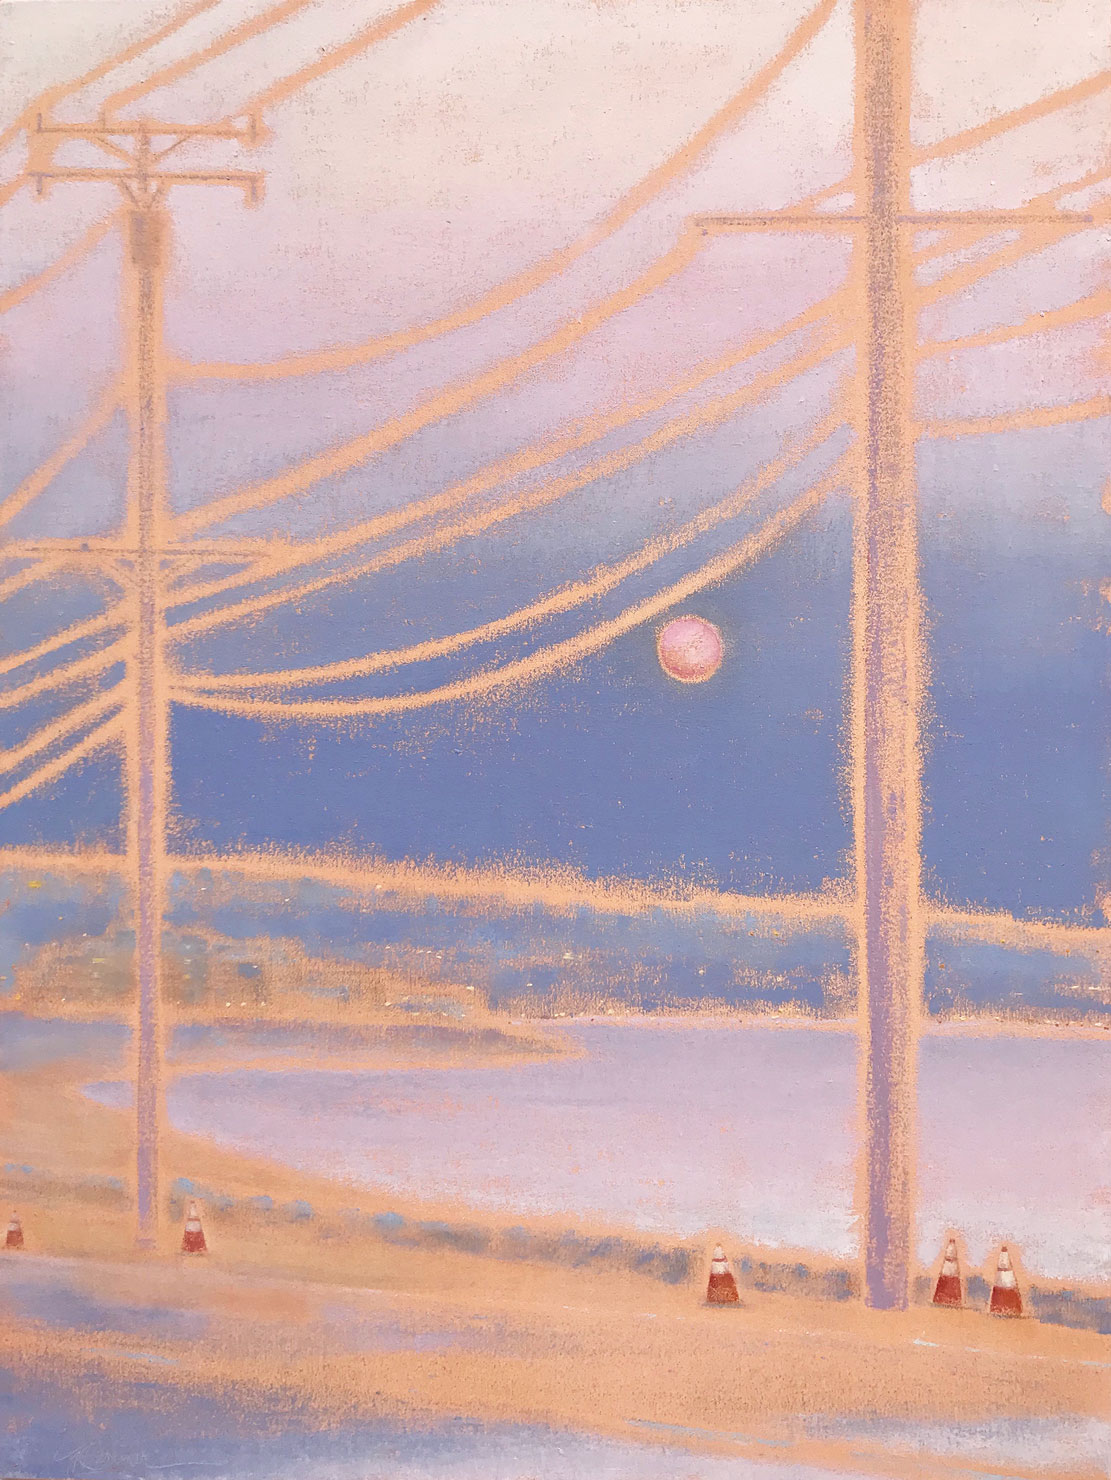 ©Gay-Summer-RIck_Pink-Moon-Interlude_Oil-on-Canvas_40x30in_Nonpro